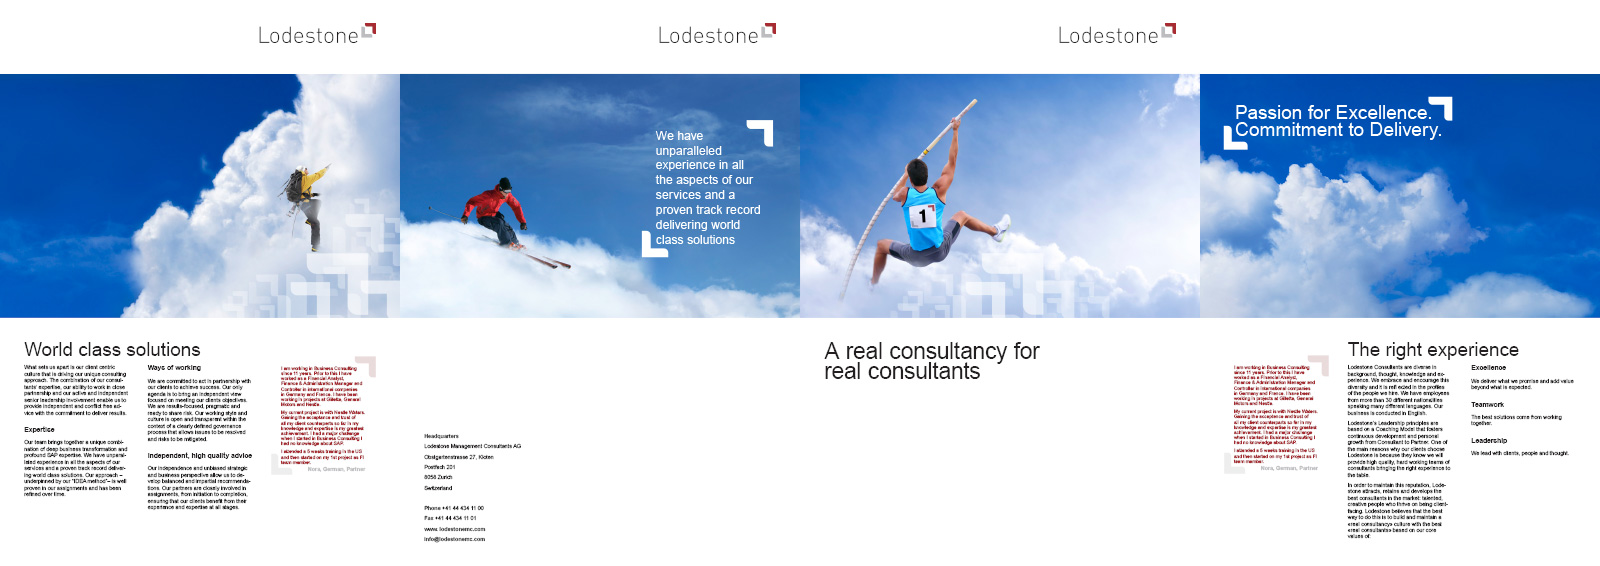 lodestone brochure - outside